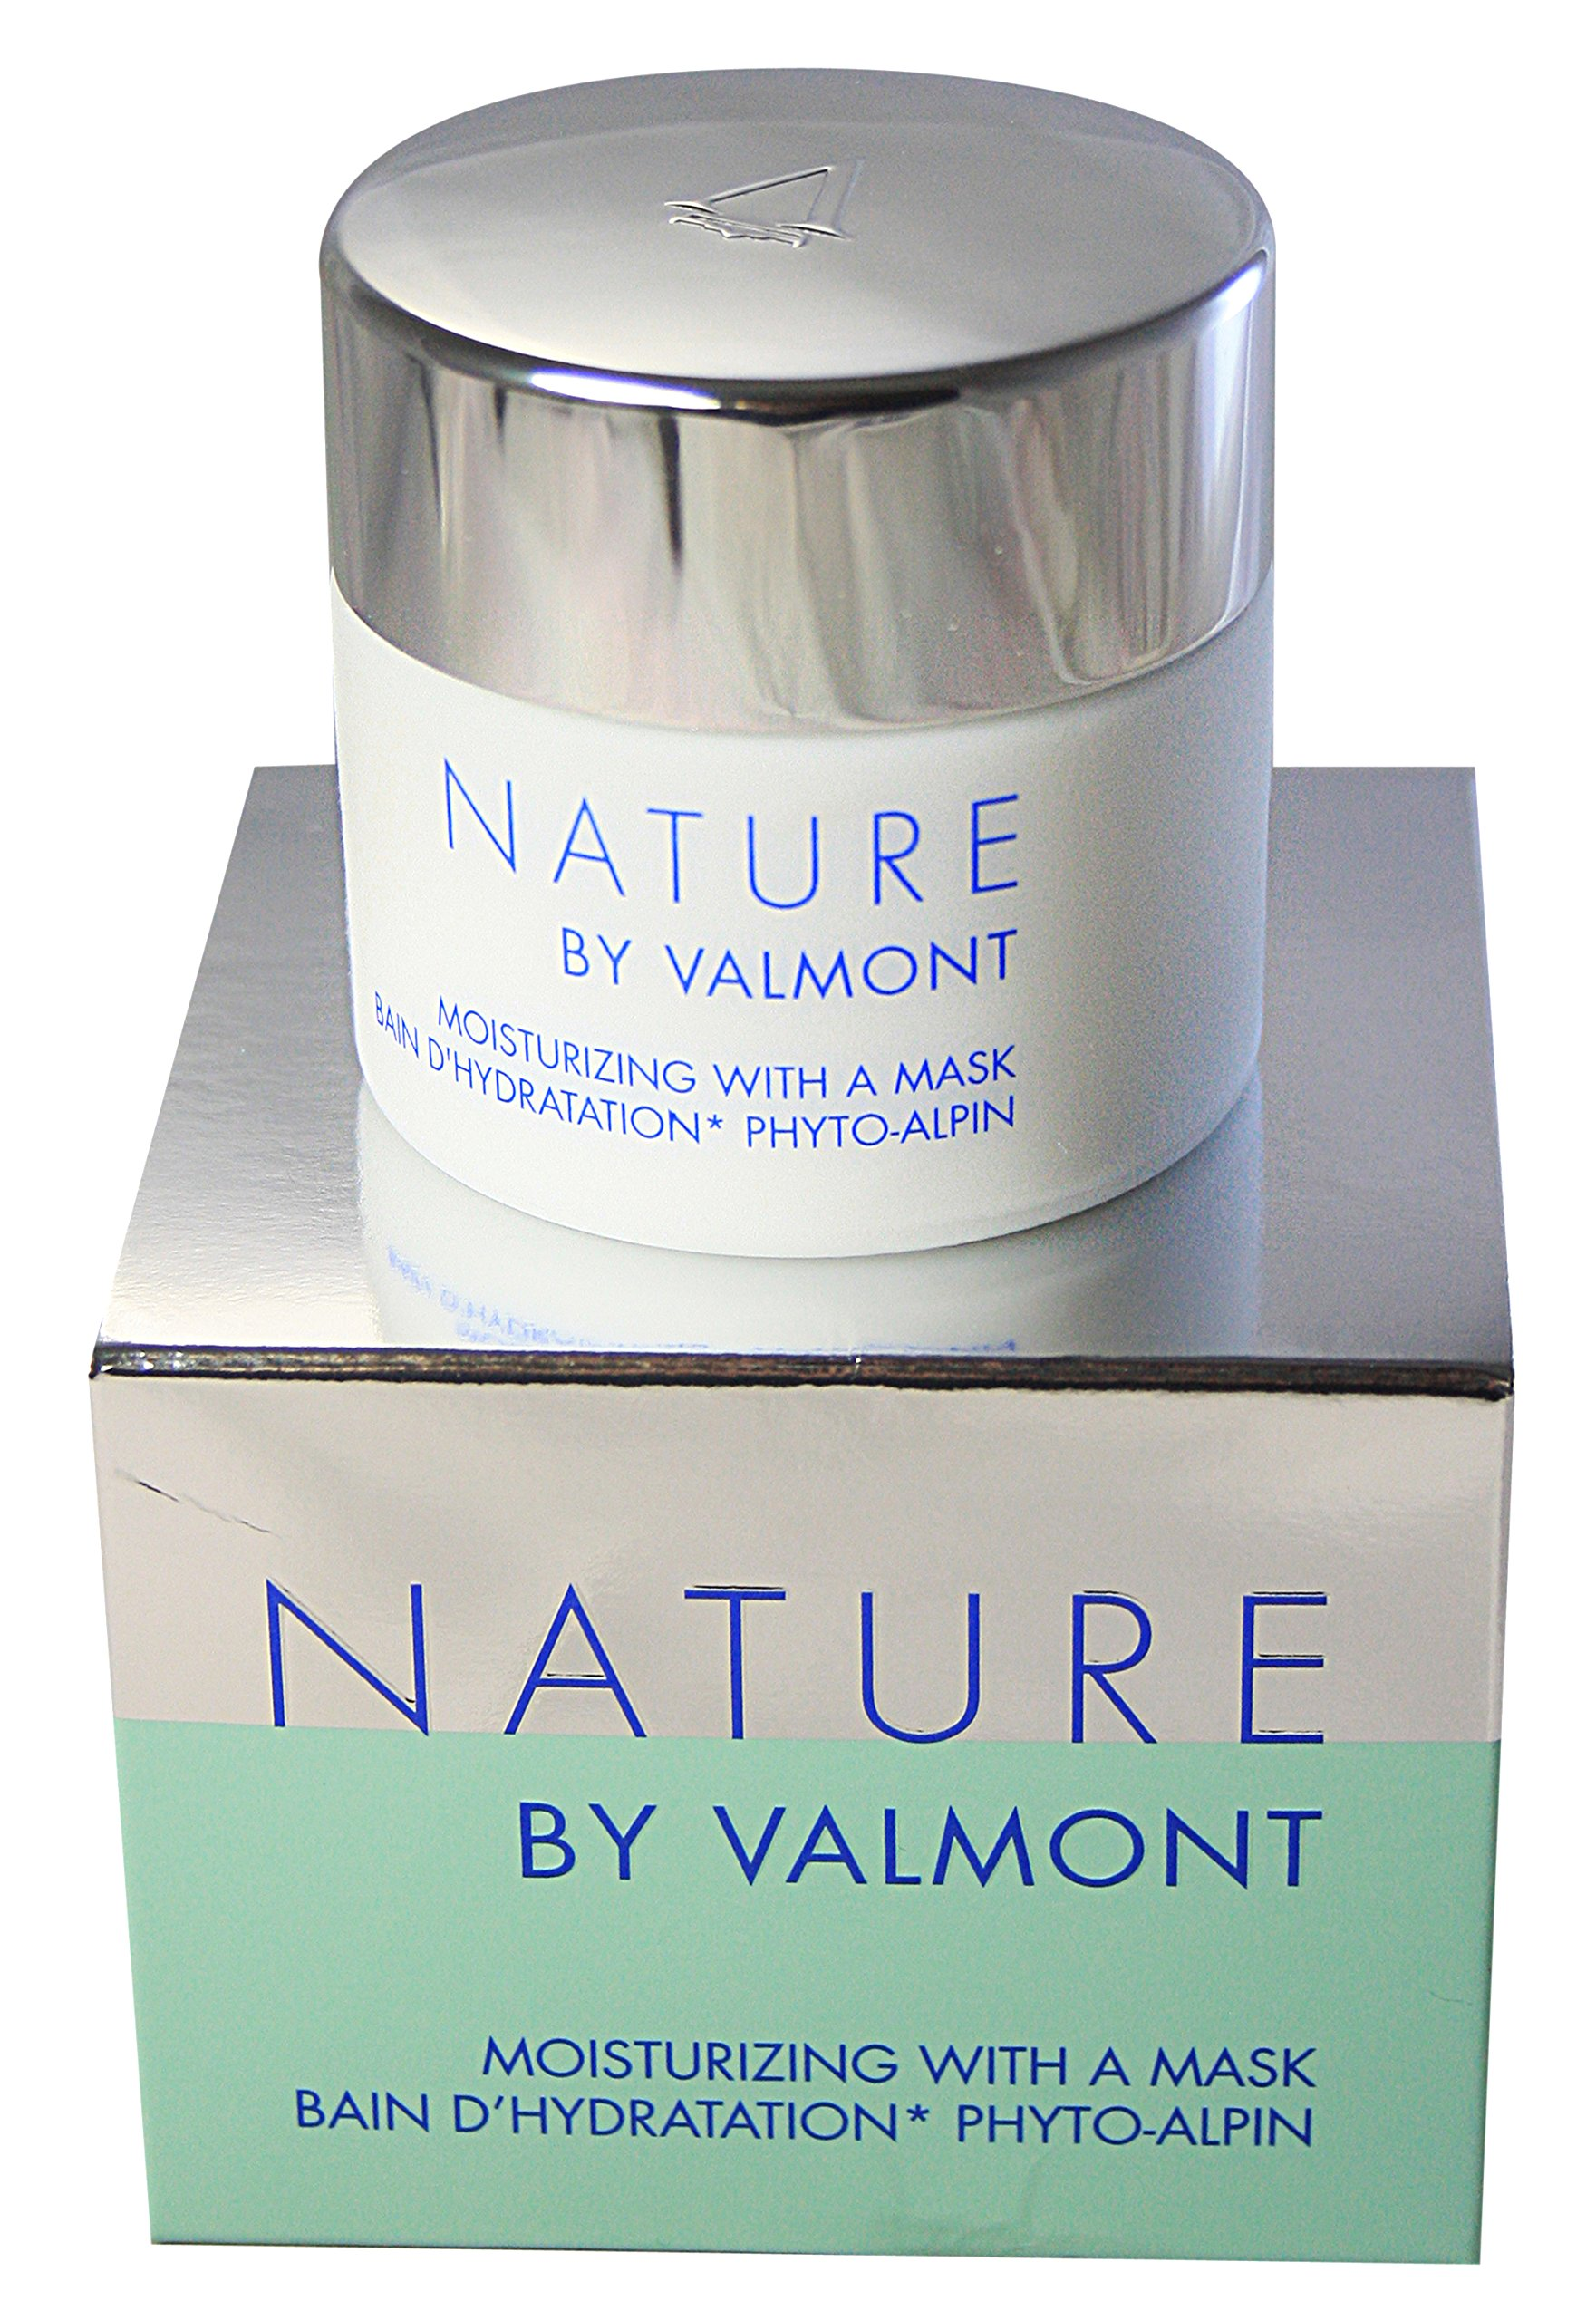 Valmont Moisturizing With A Mask for Unisex,1.7 oz